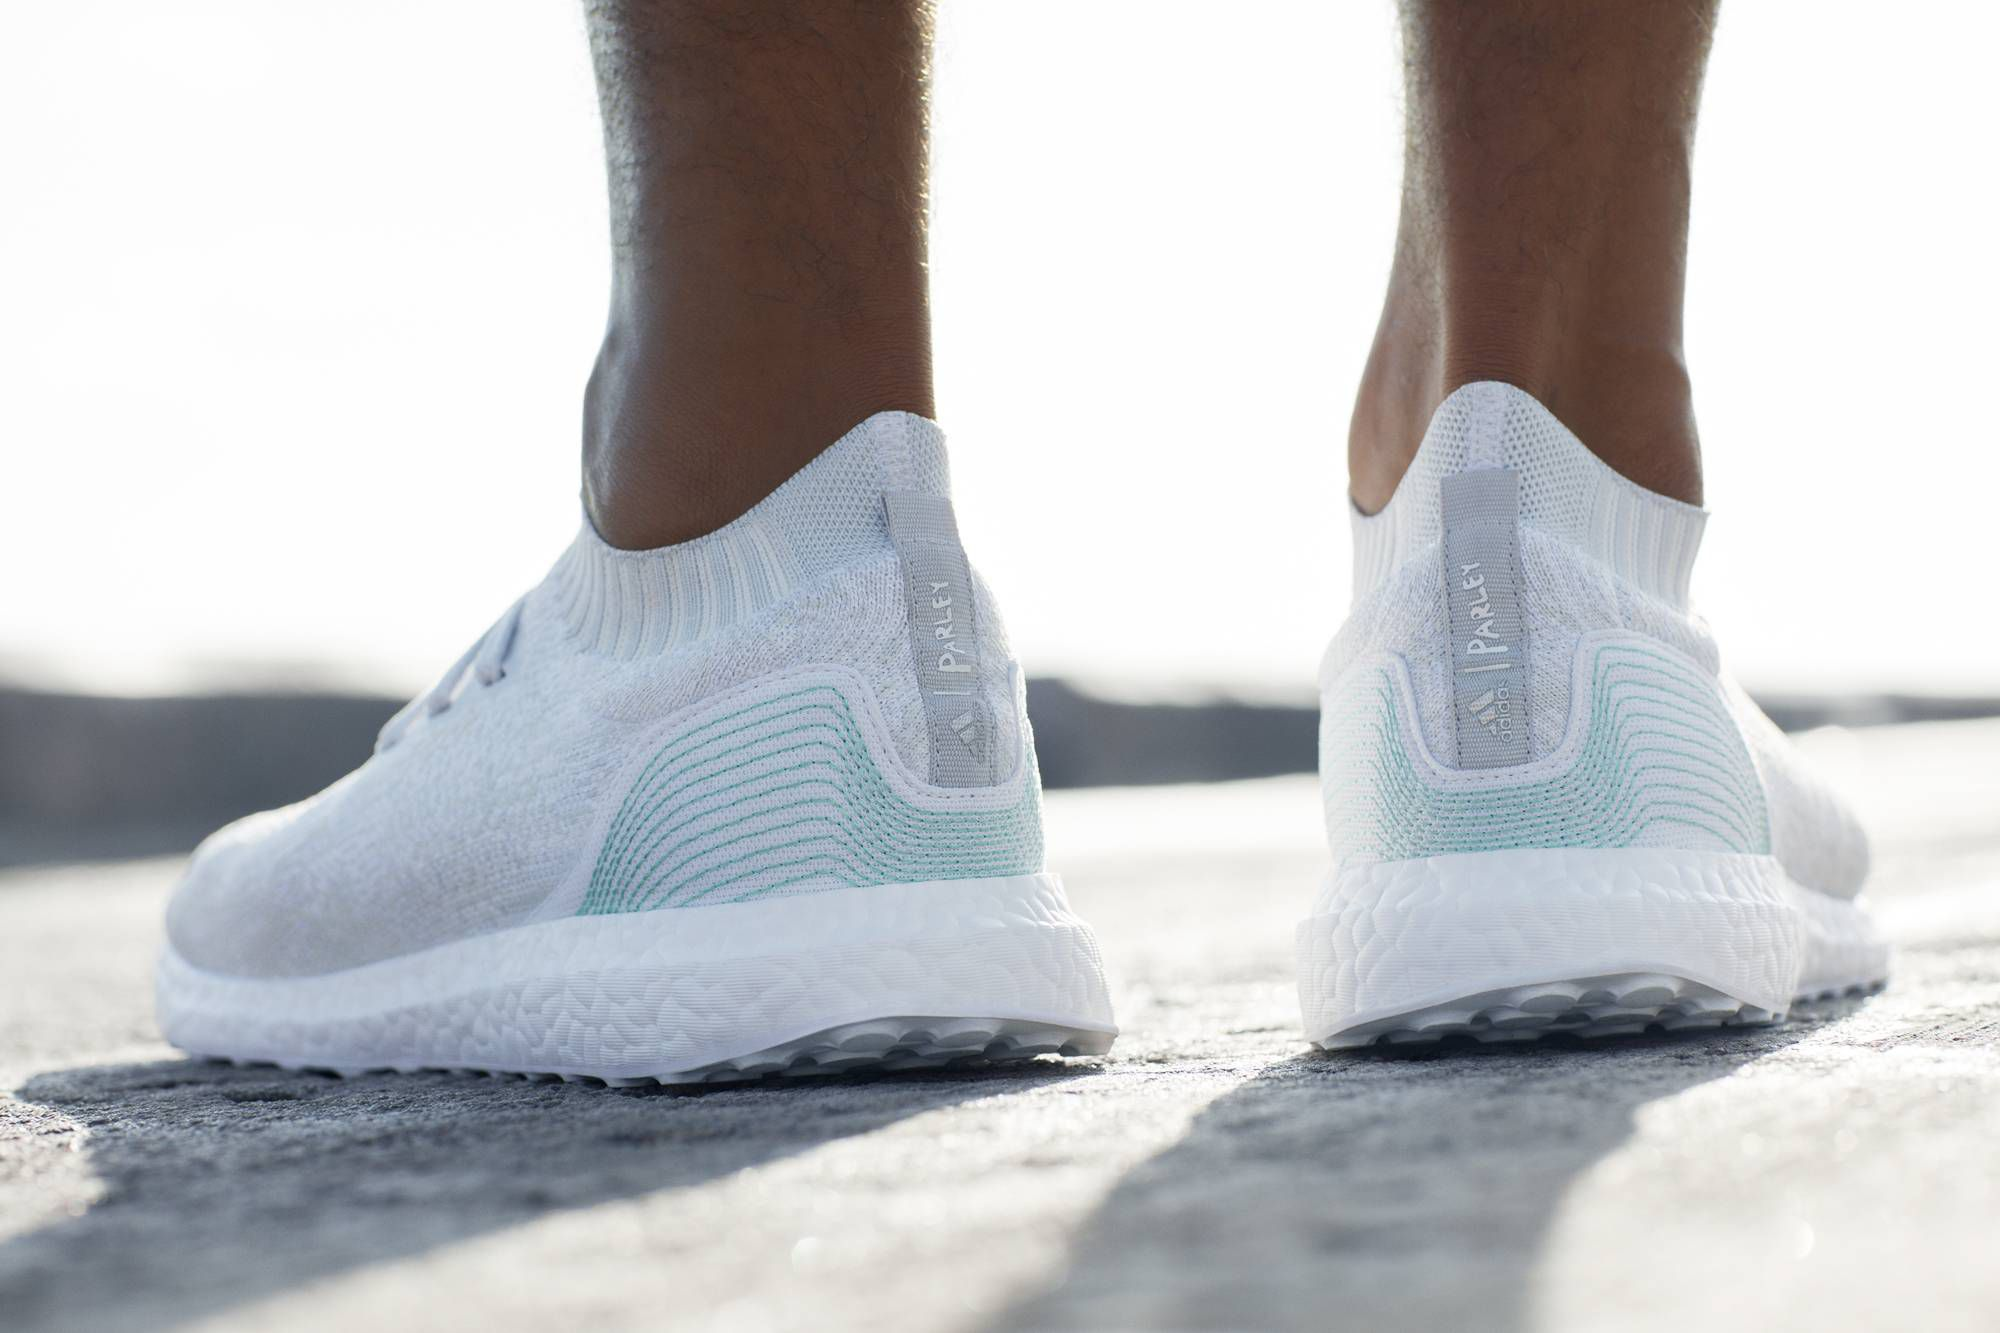 53c55fc3e5c24 Dirk Schonberger  The Adidas man tasked with designing the future of  footwear